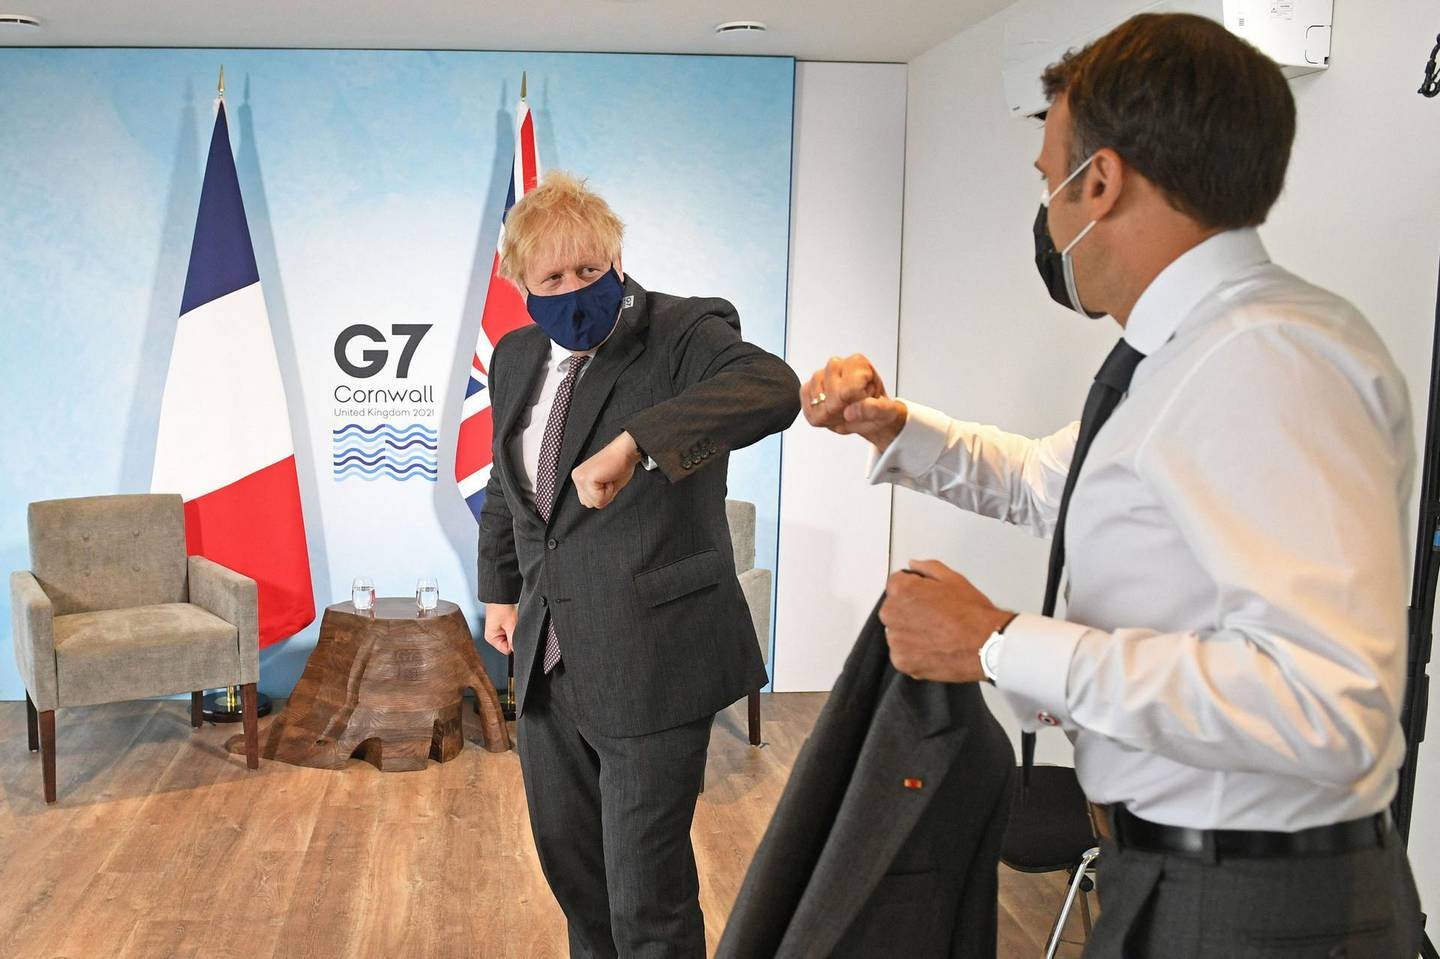 Britain's Prime Minister Boris Johnson greets France's President Emmanuel Macron before a bilateral meeting during the G7 summit in Carbis bay, Cornwall on June 12, 2021. / AFP / POOL / Stefan Rousseau